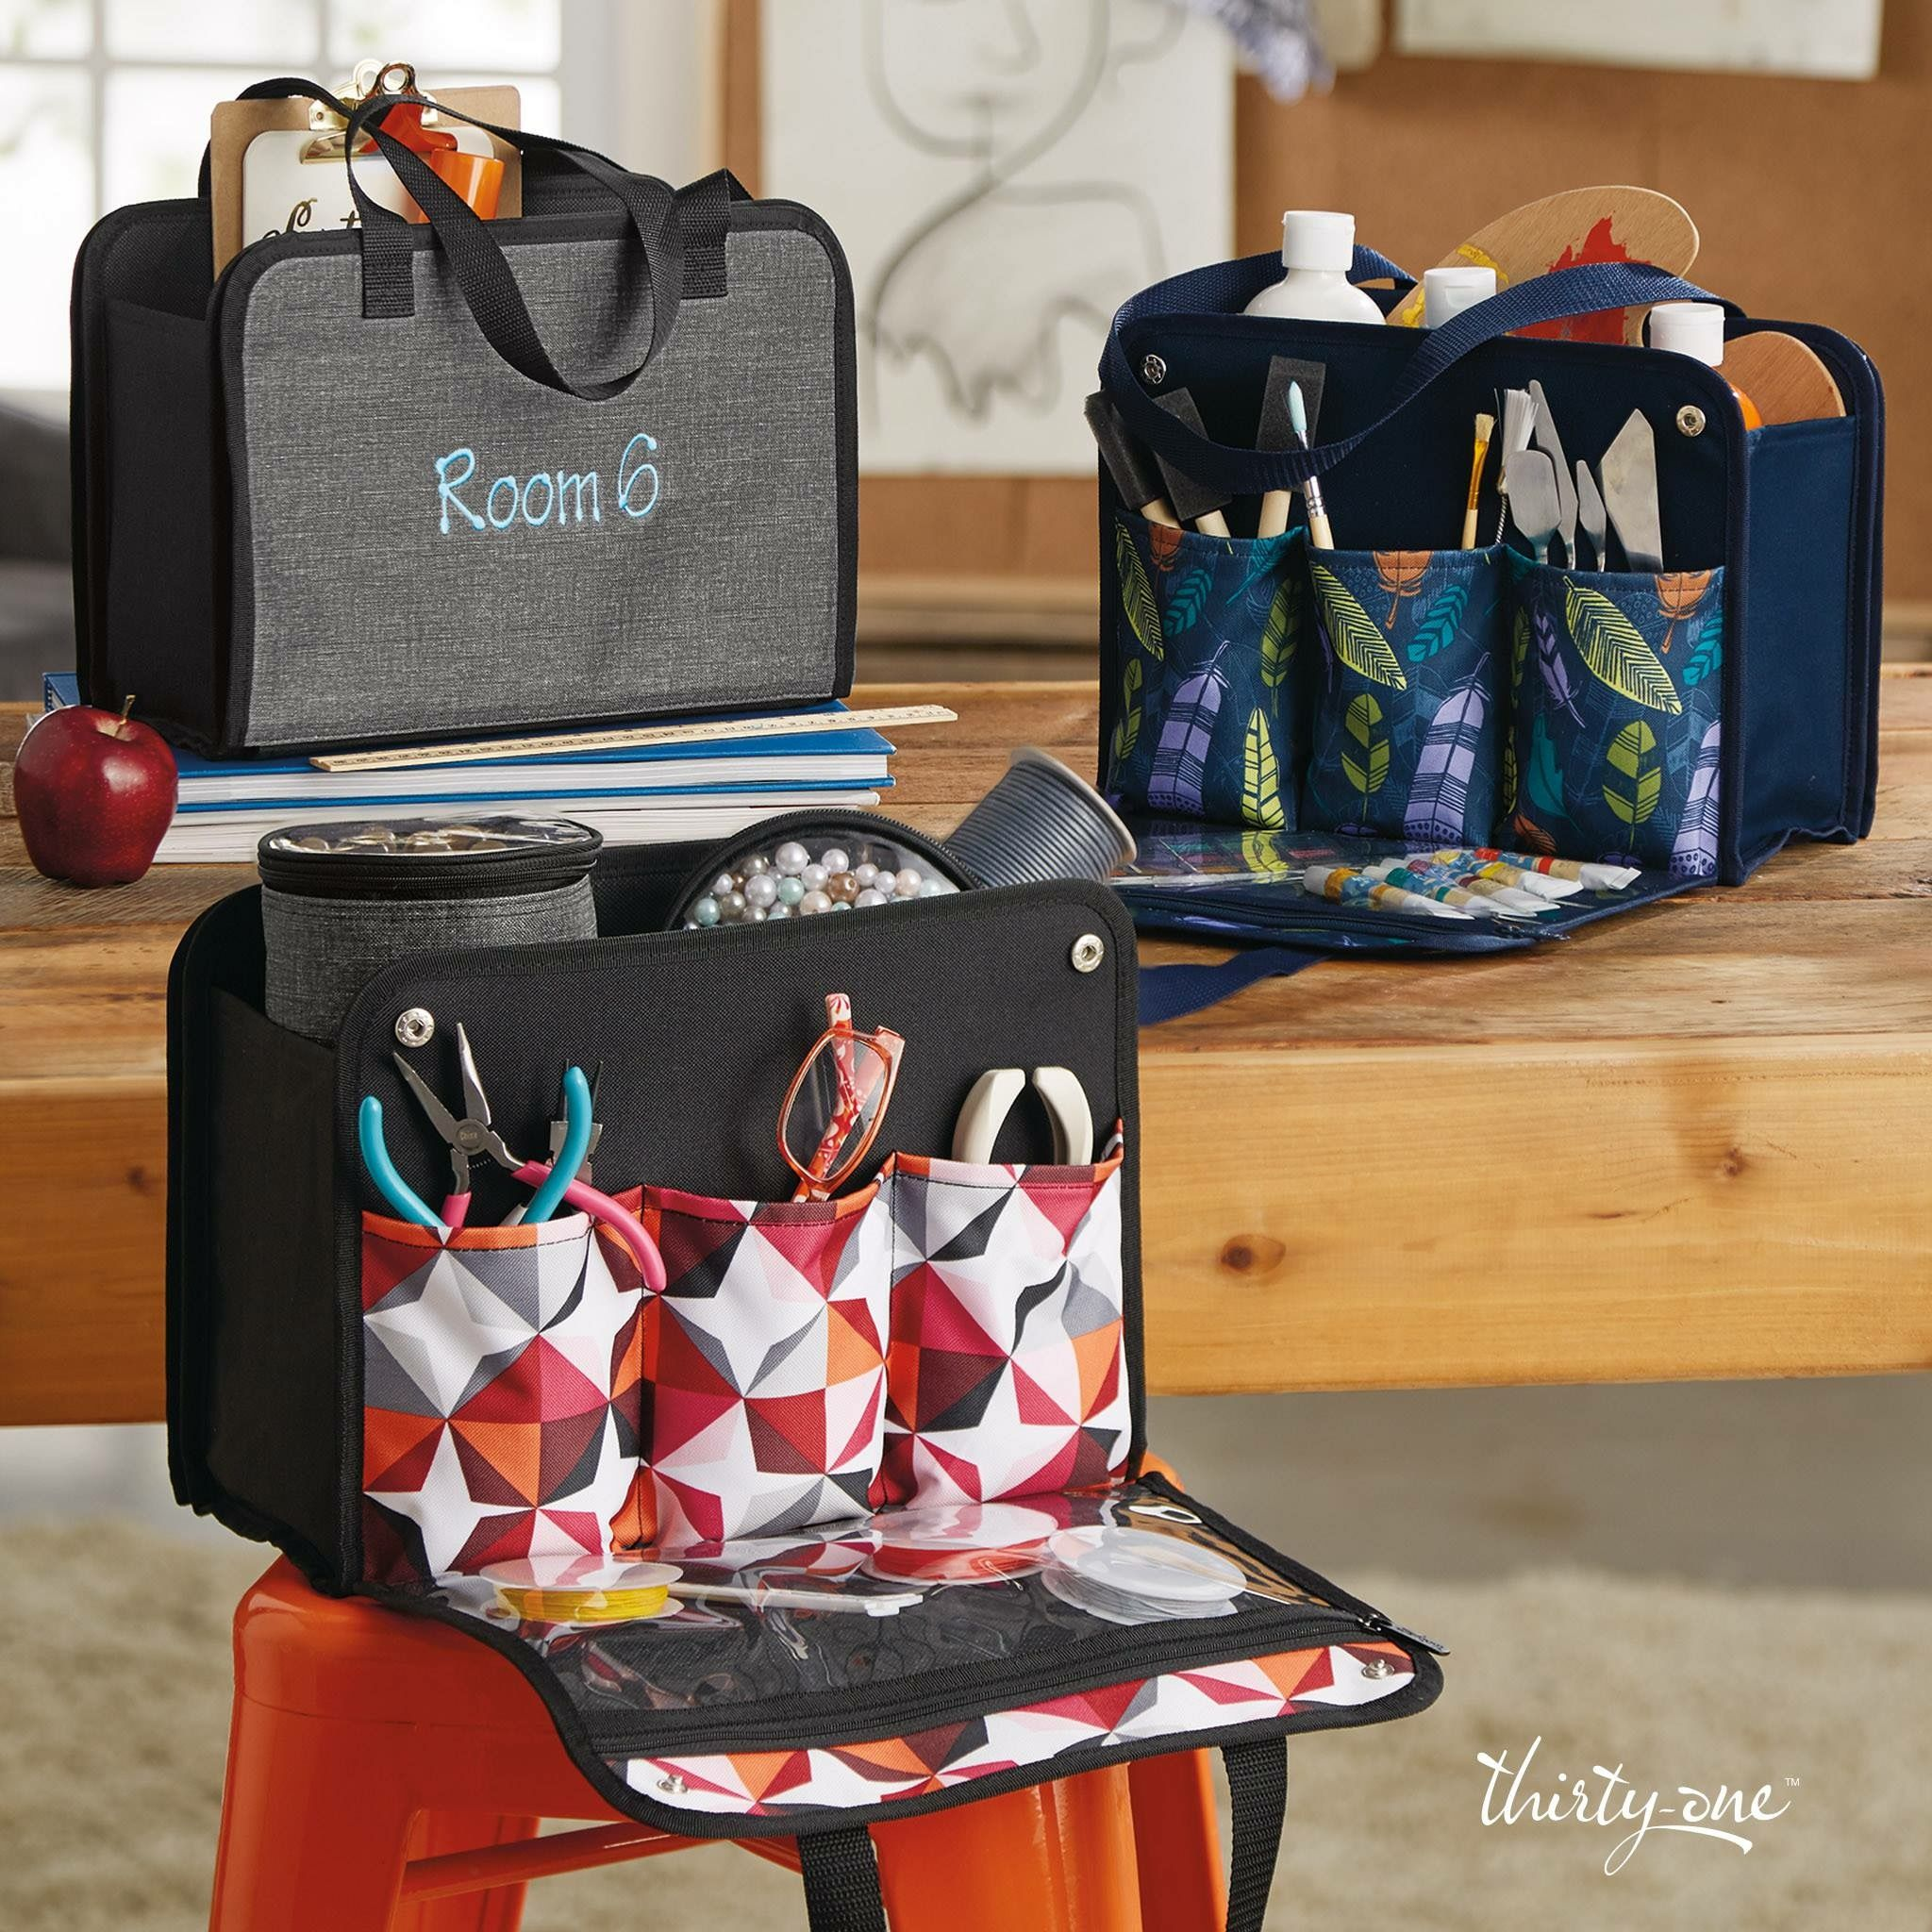 75d96e0379 Get Creative Caddy by Thirty One. Organize the tools of your craft!  www.mythirtyone.com kimishadwick